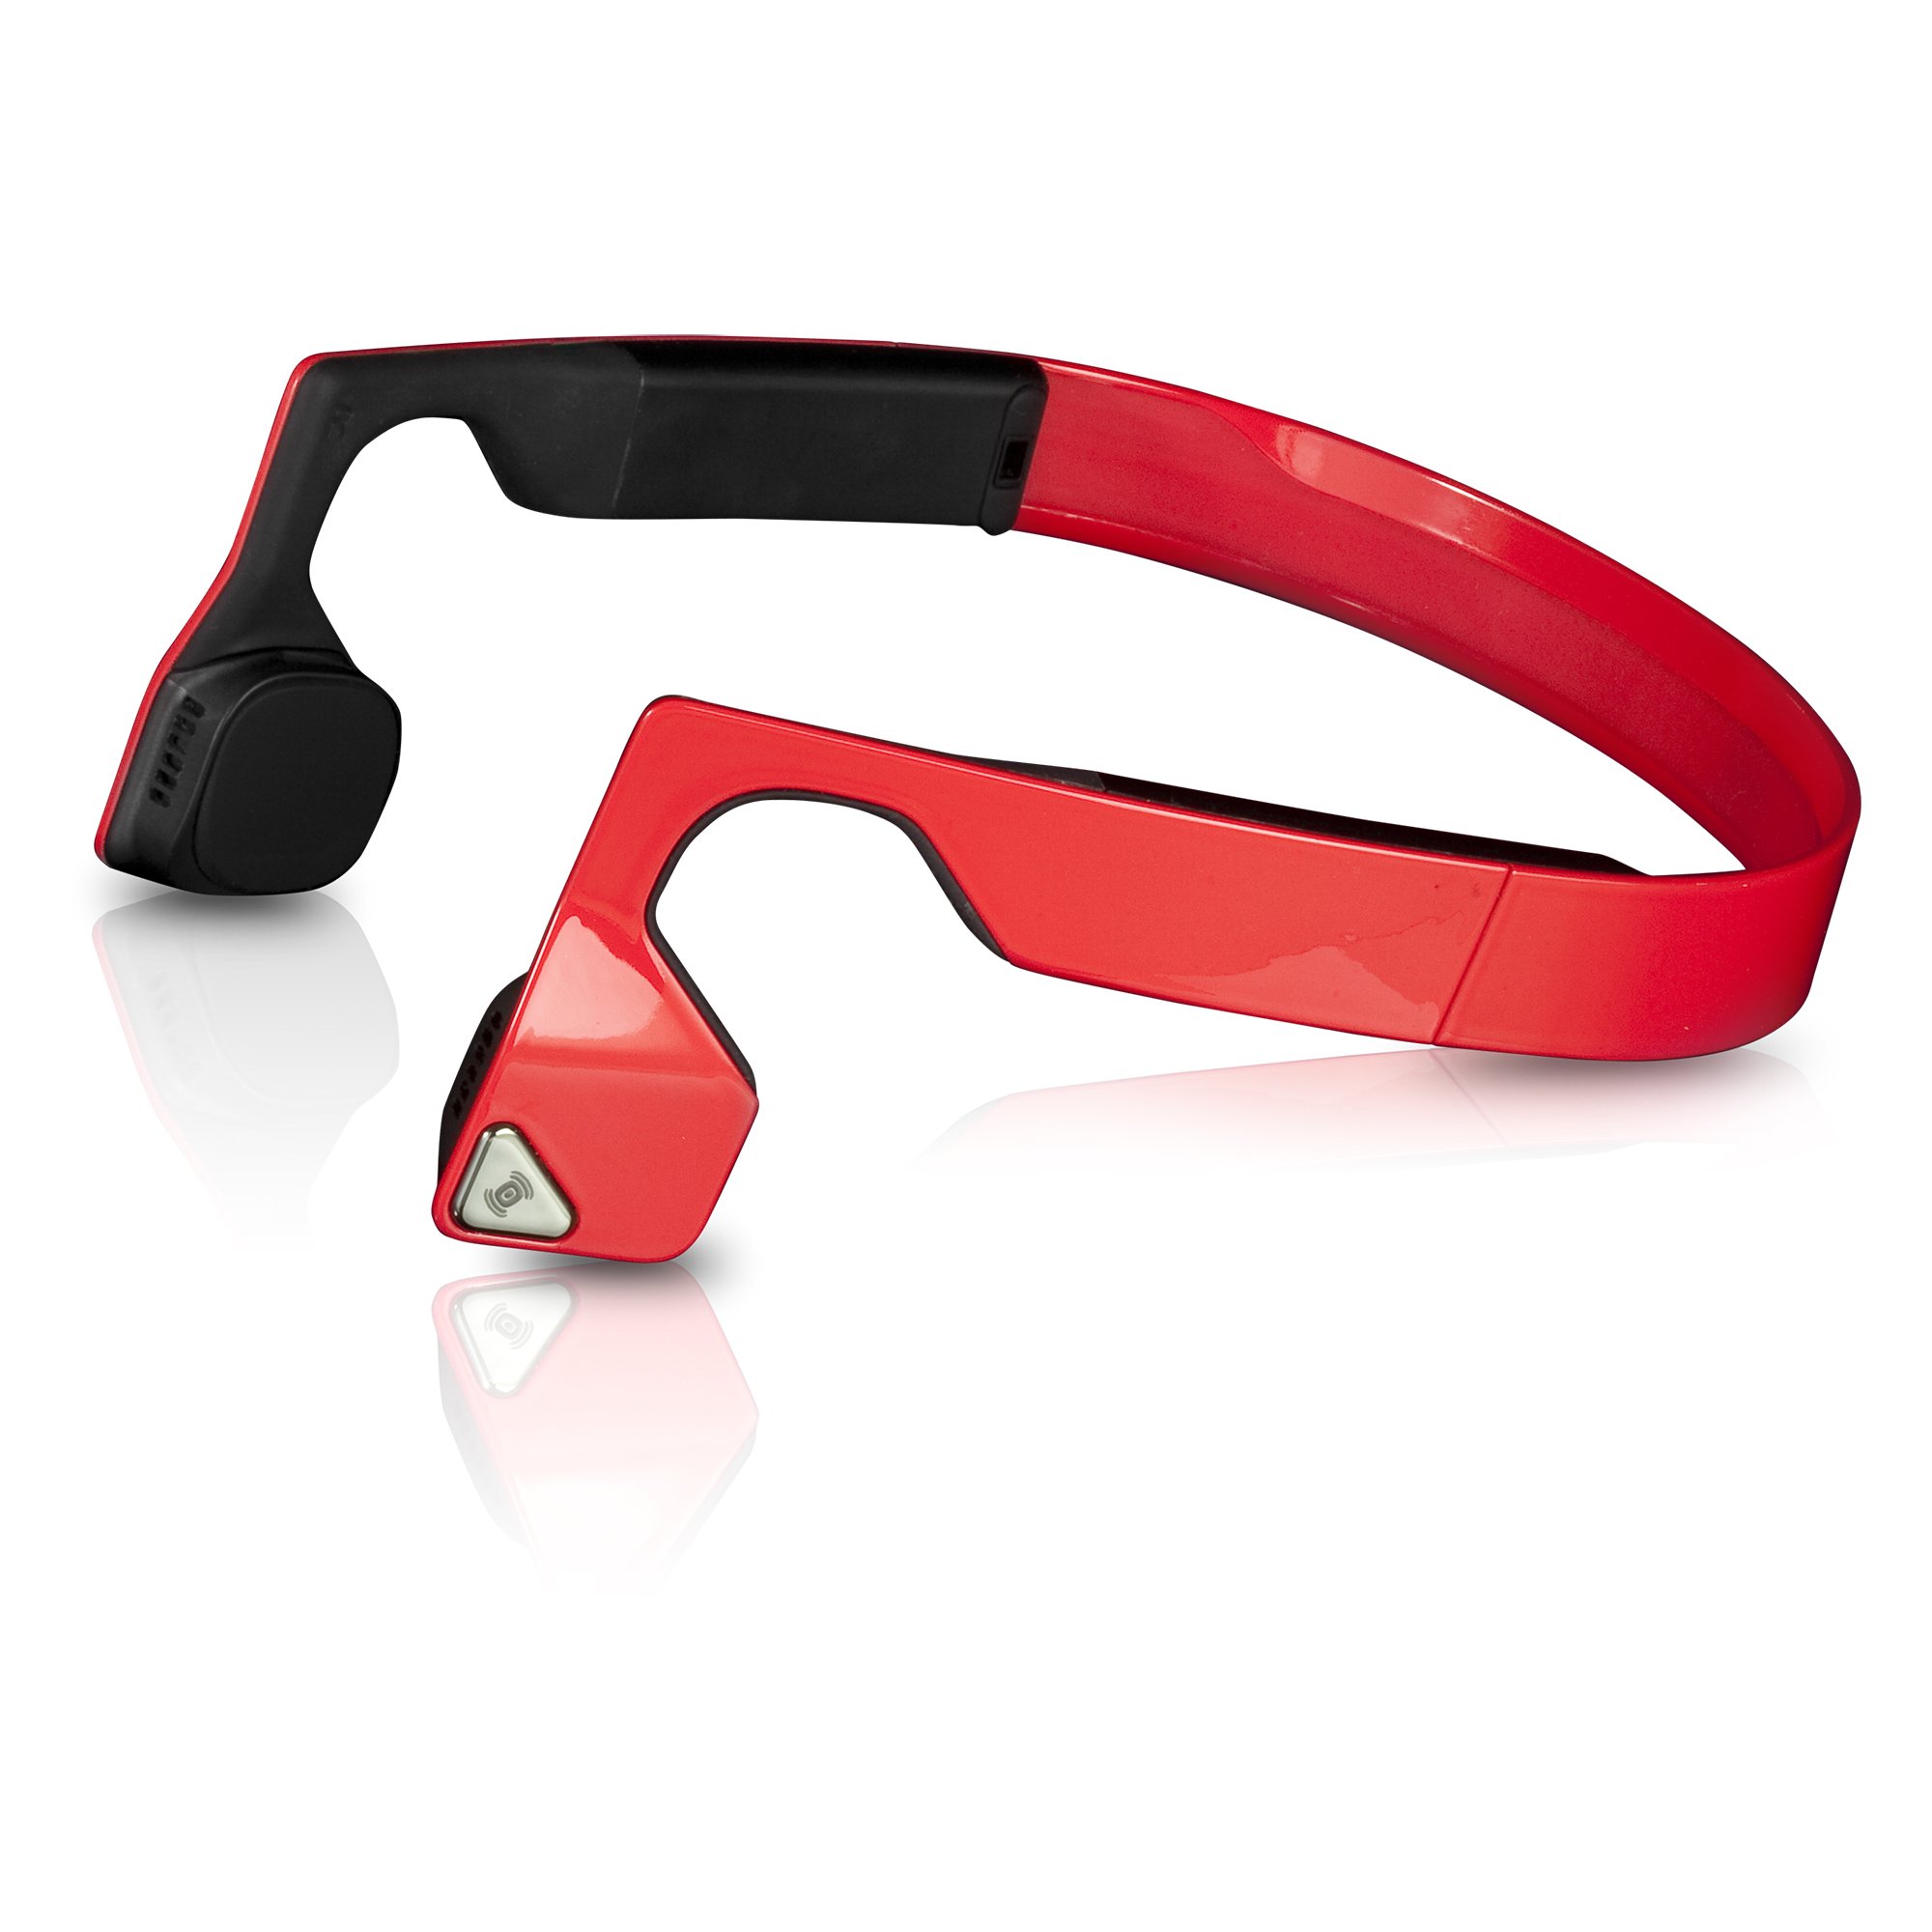 Image of AfterShokz Bluez 2 Bluetooth Wireless Headphones - Red